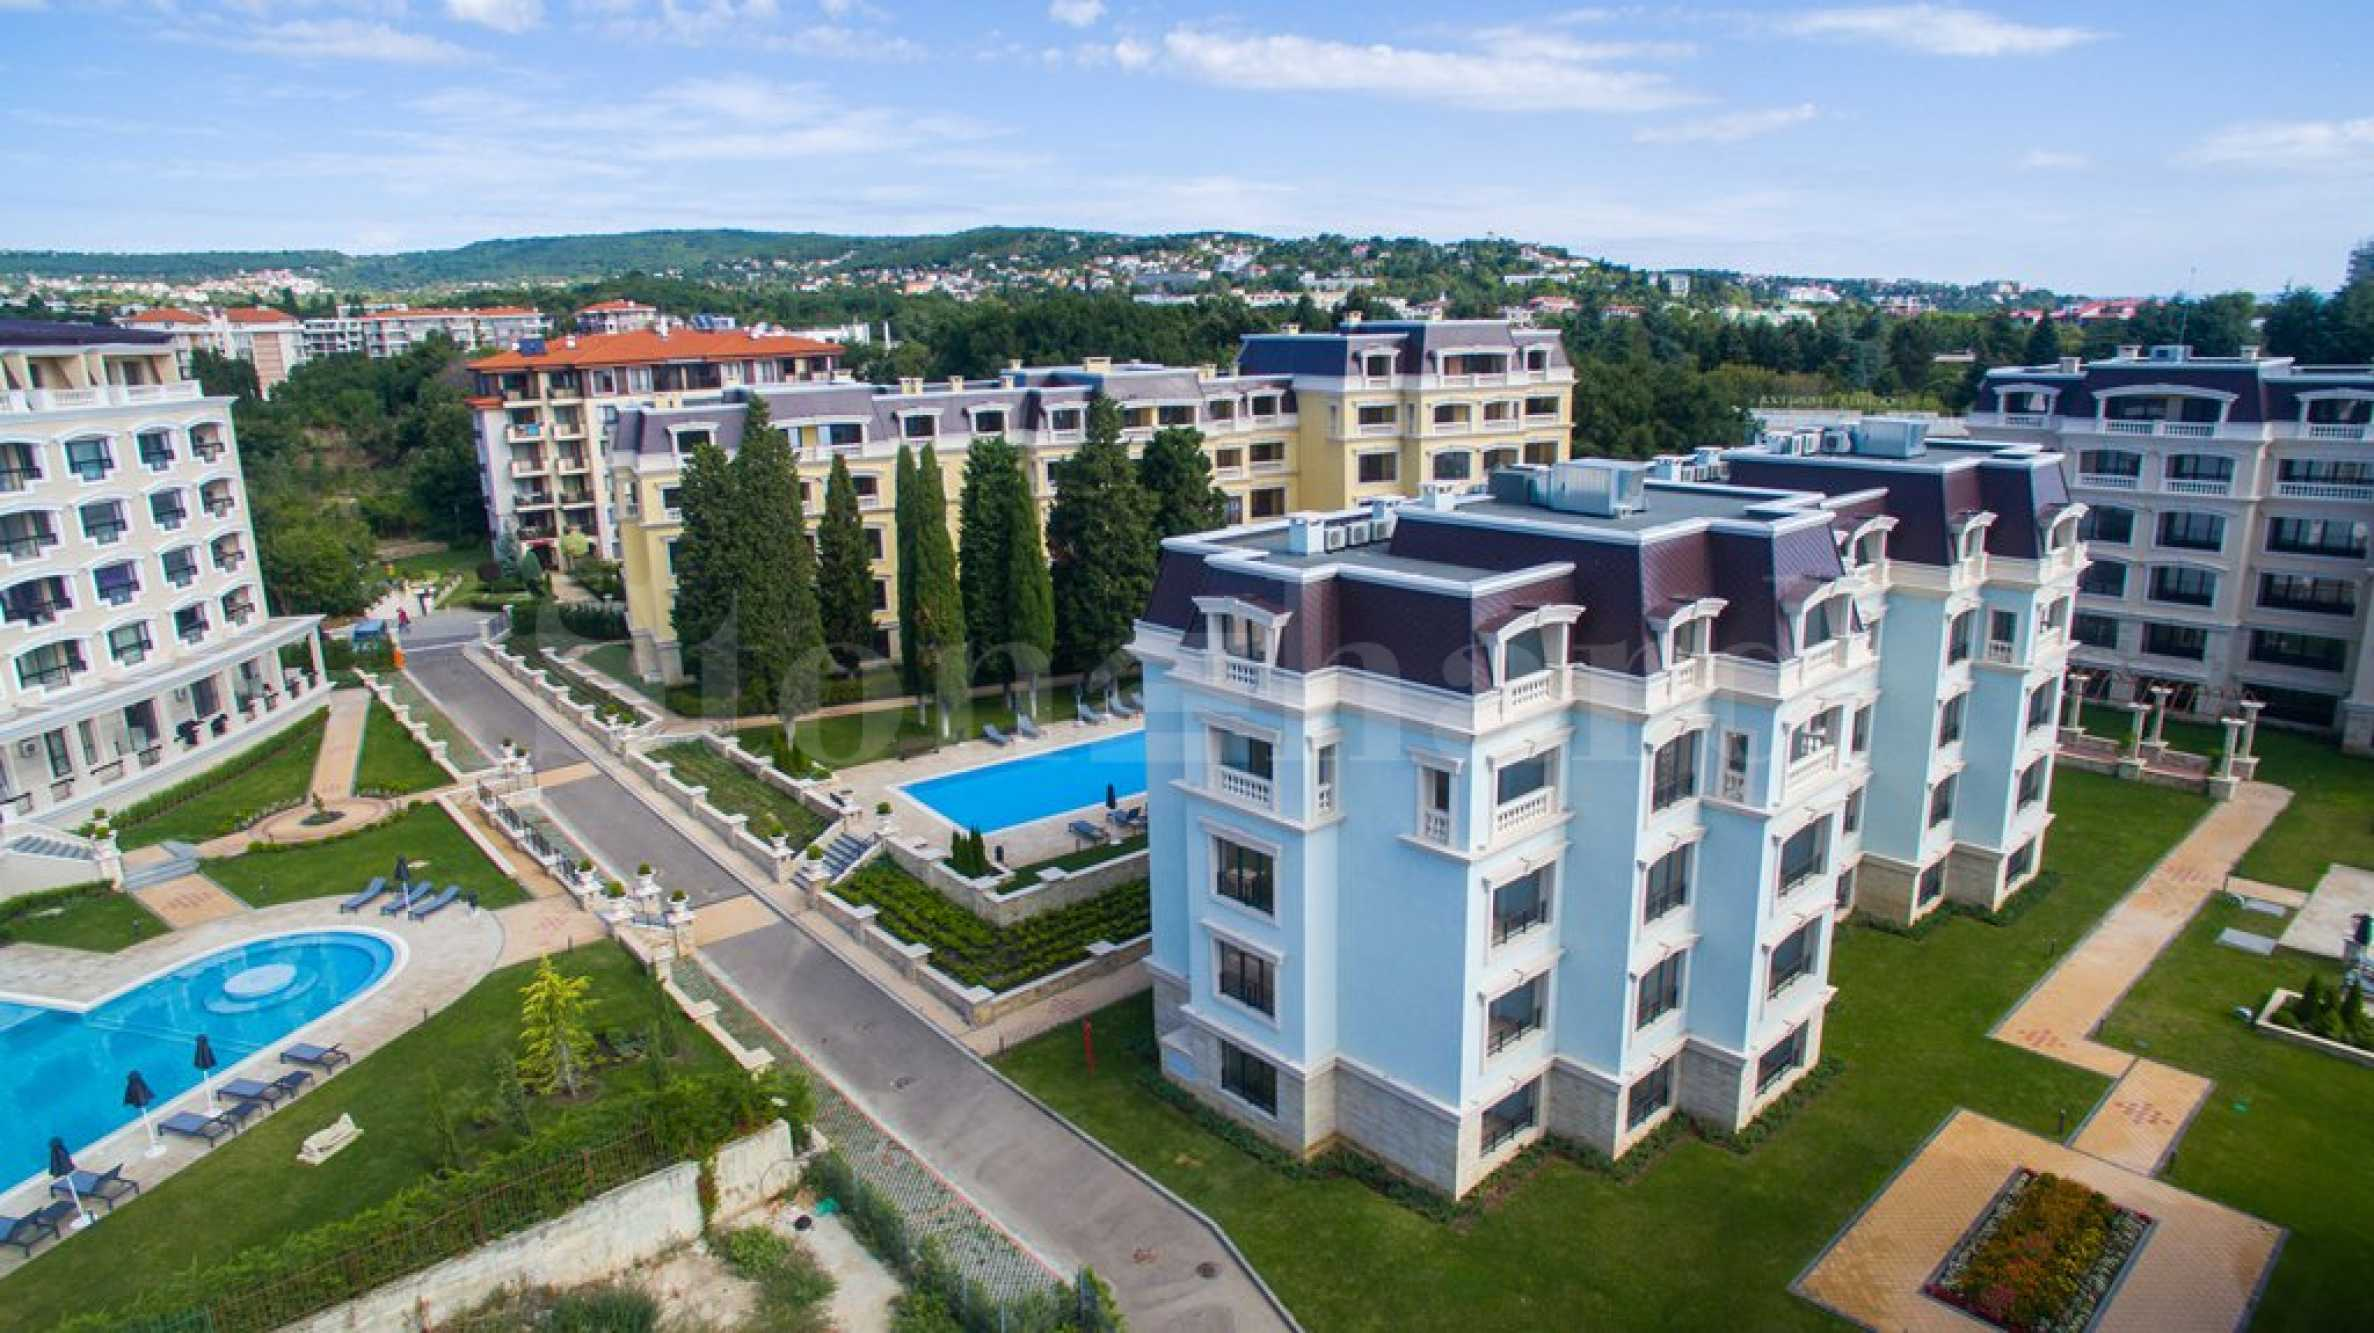 Turn-key holiday apartments in a completed luxury complex 2 - Stonehard